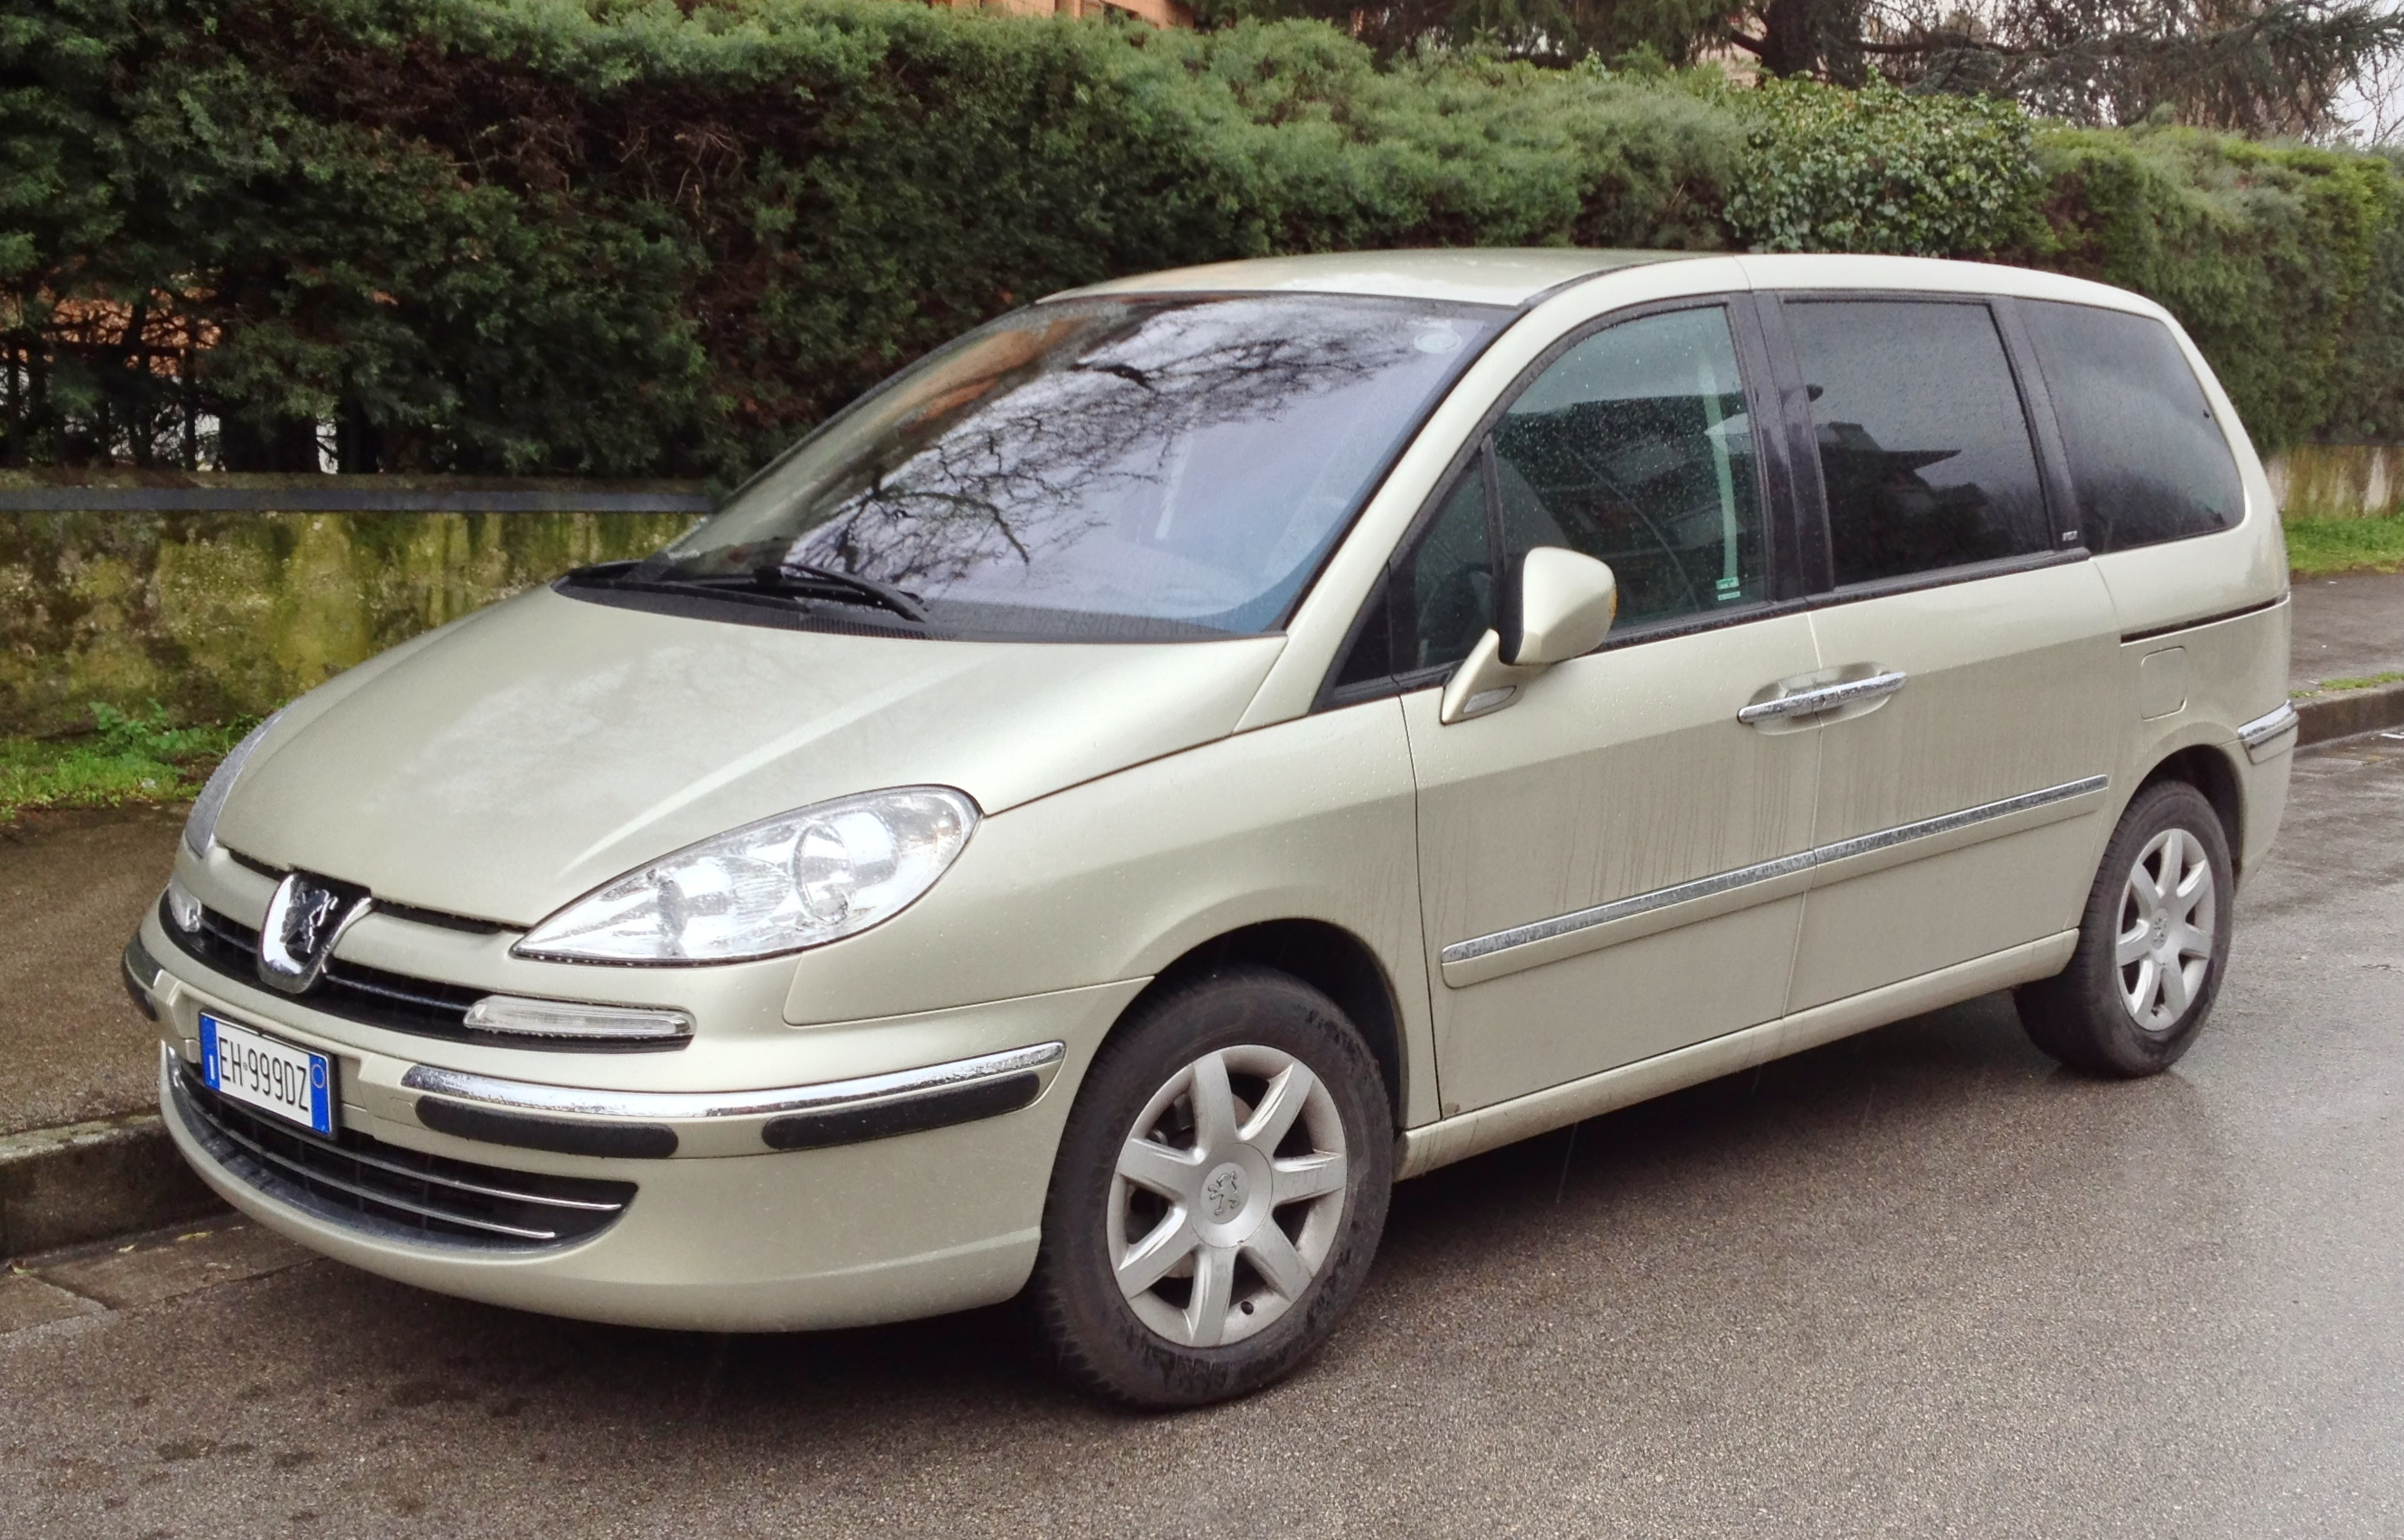 file peugeot 807 2 2 hdi jpg wikimedia commons